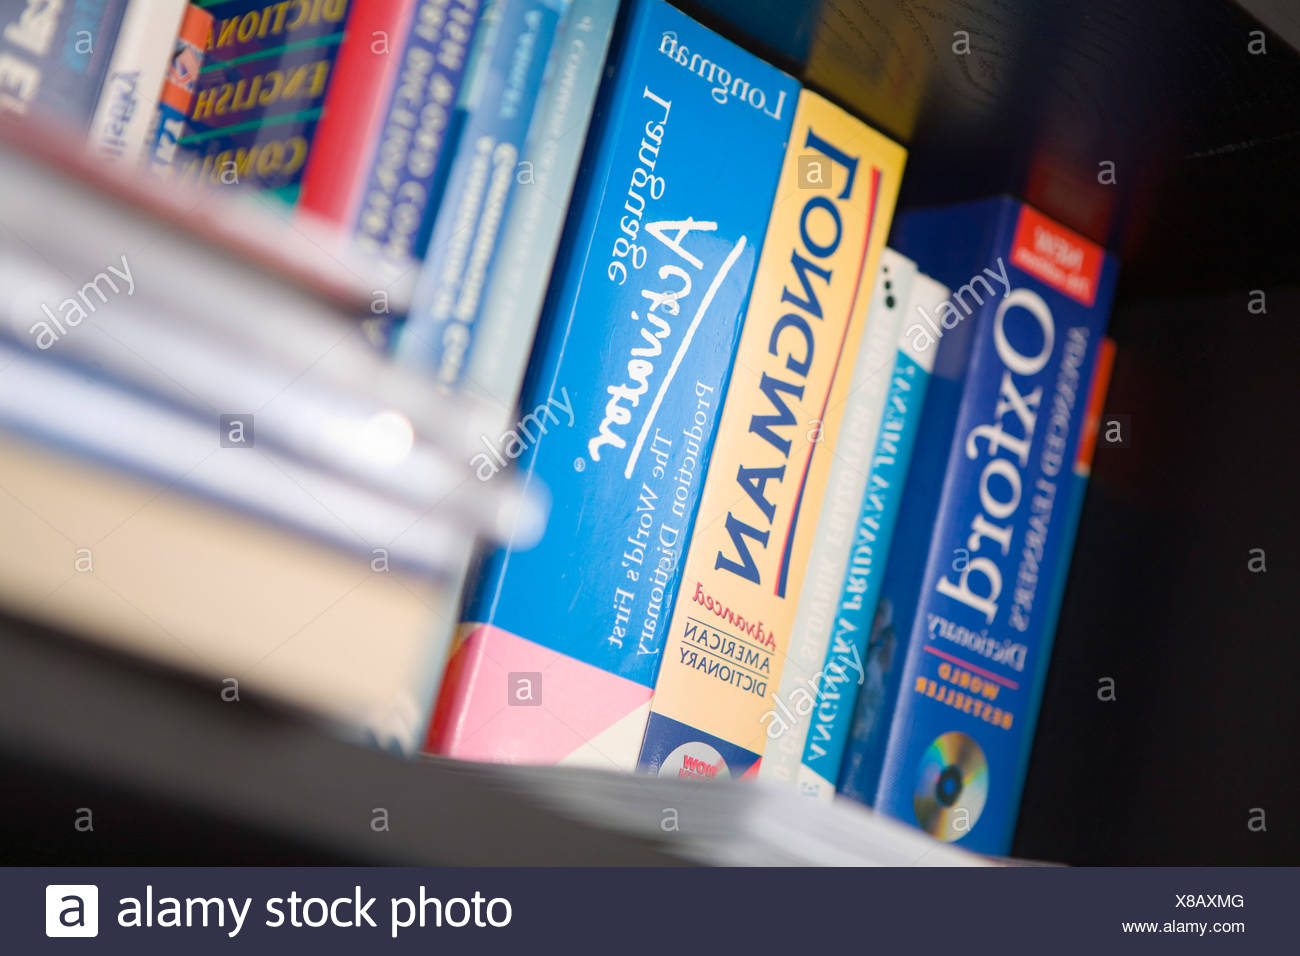 Dictionaries Stock Photo